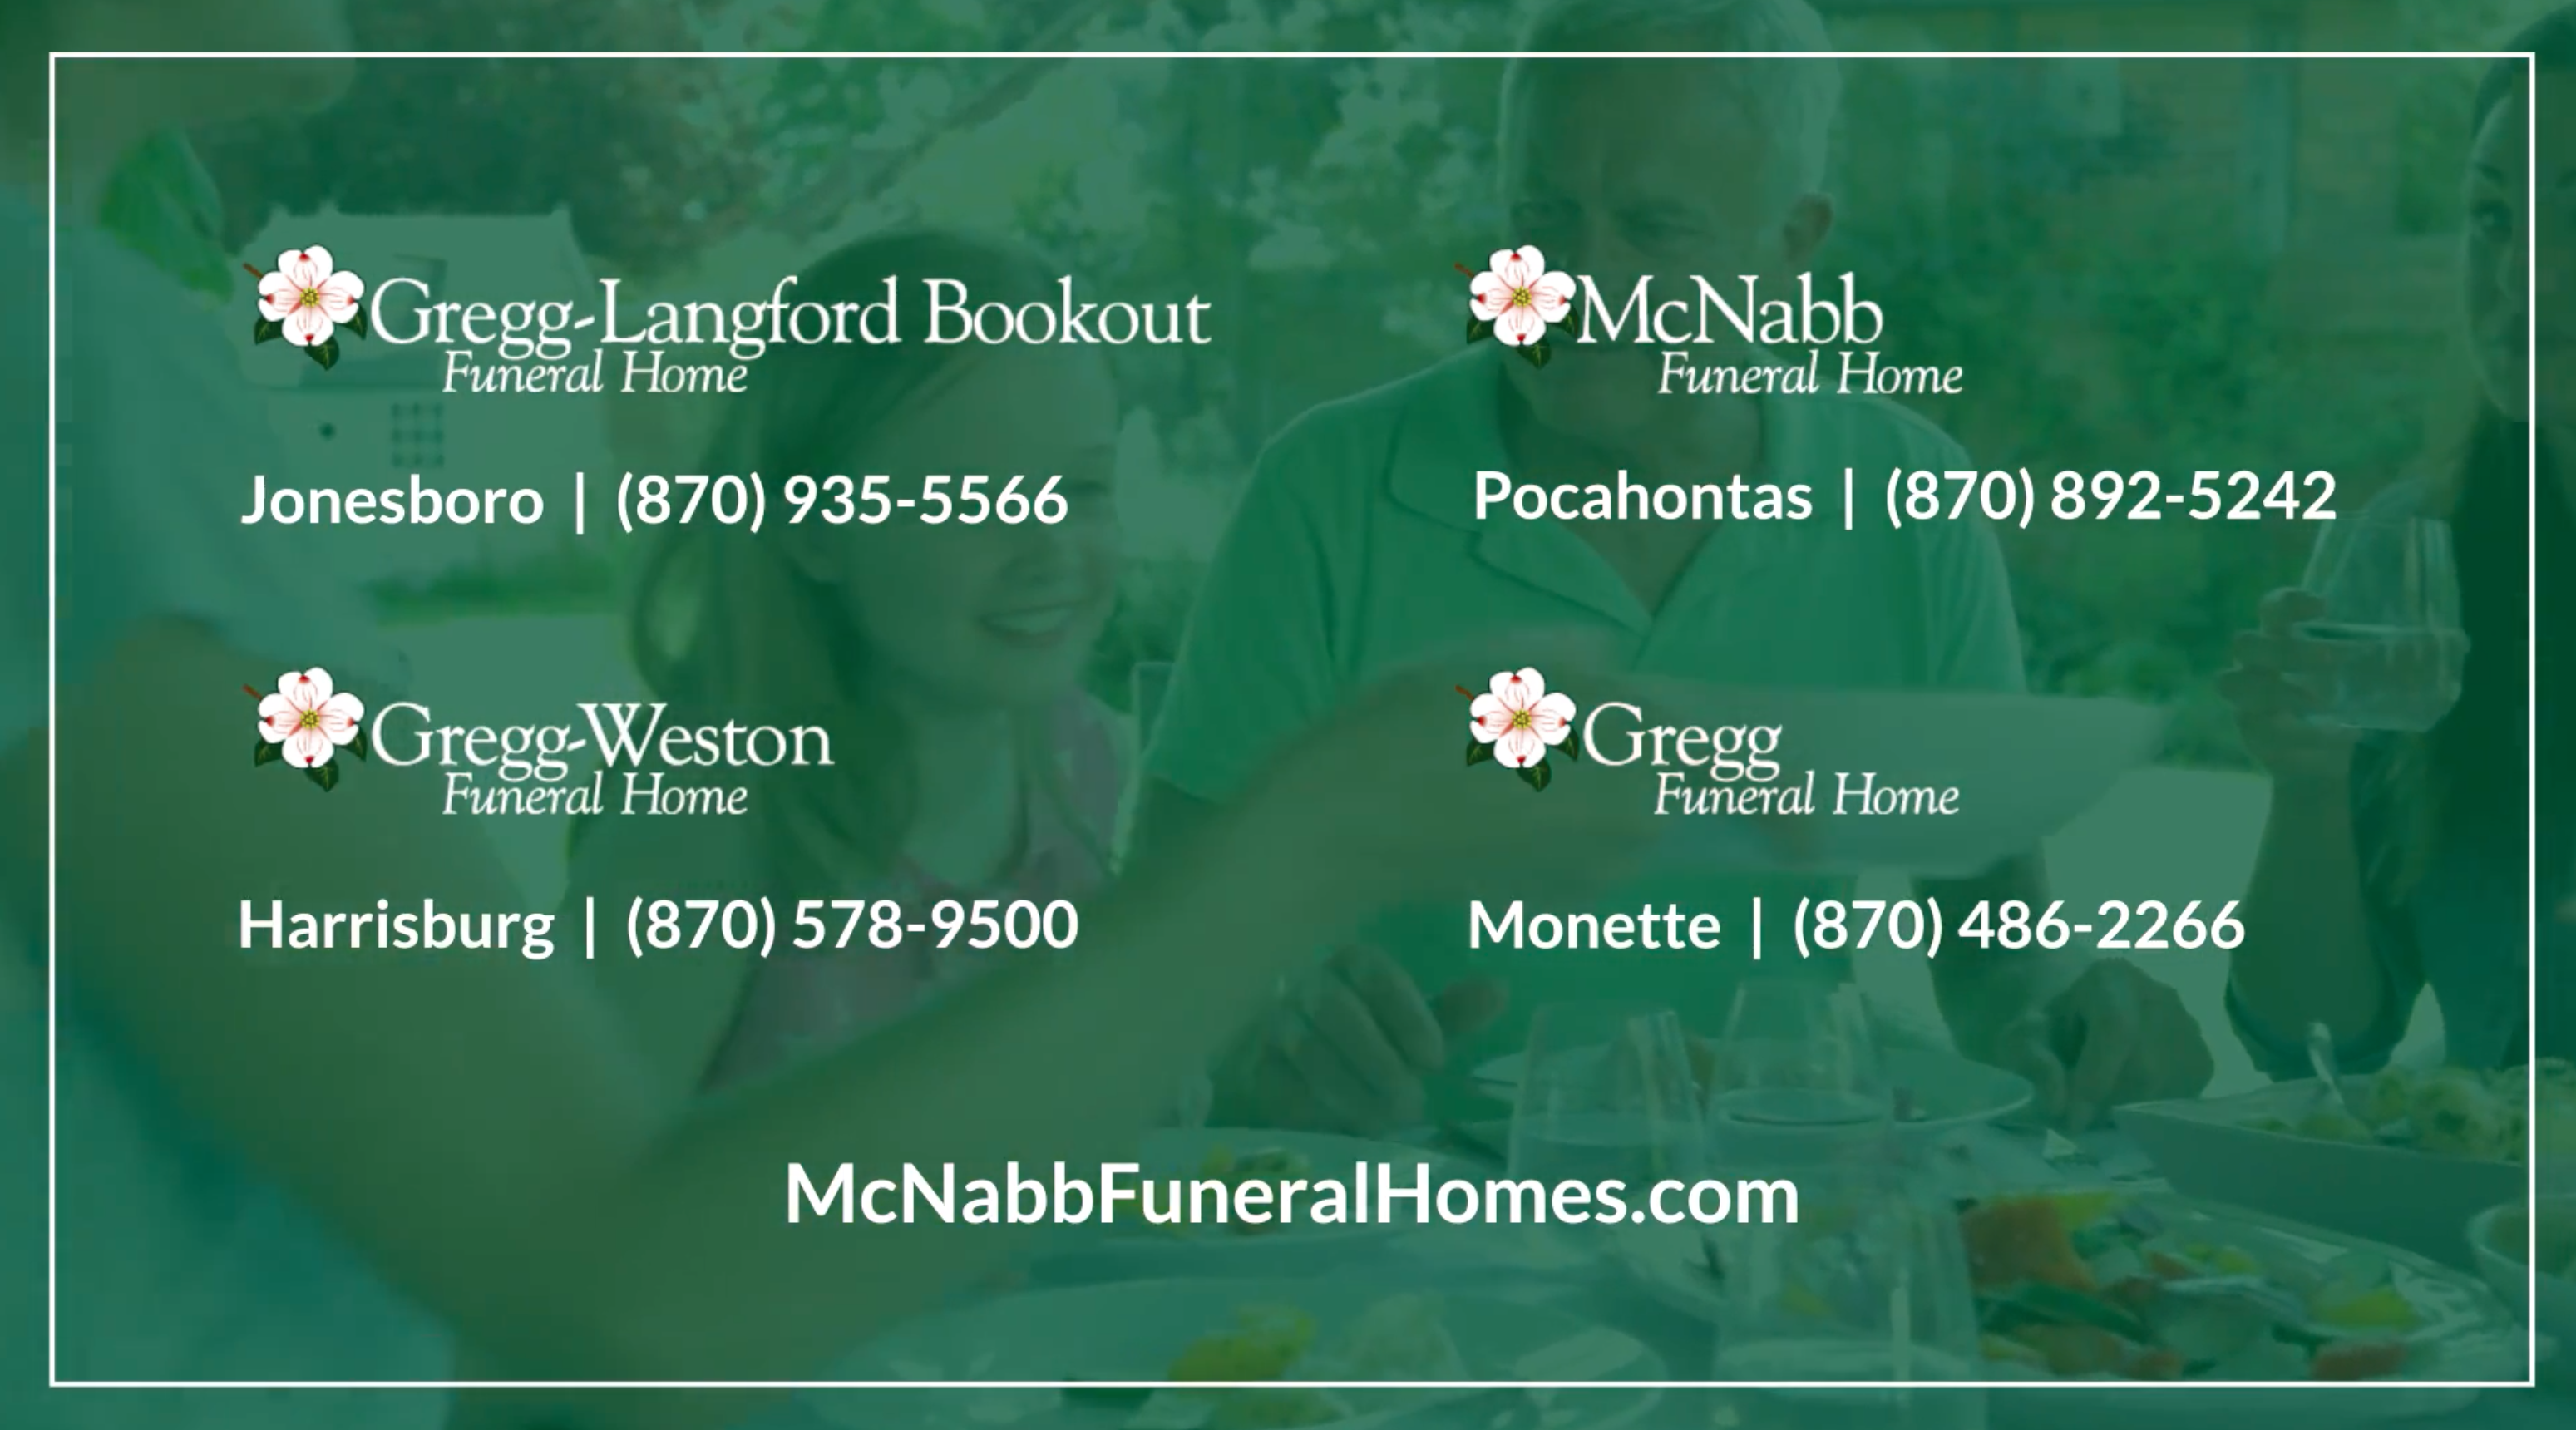 green overlay on image of family with mcnabb locations listed on top